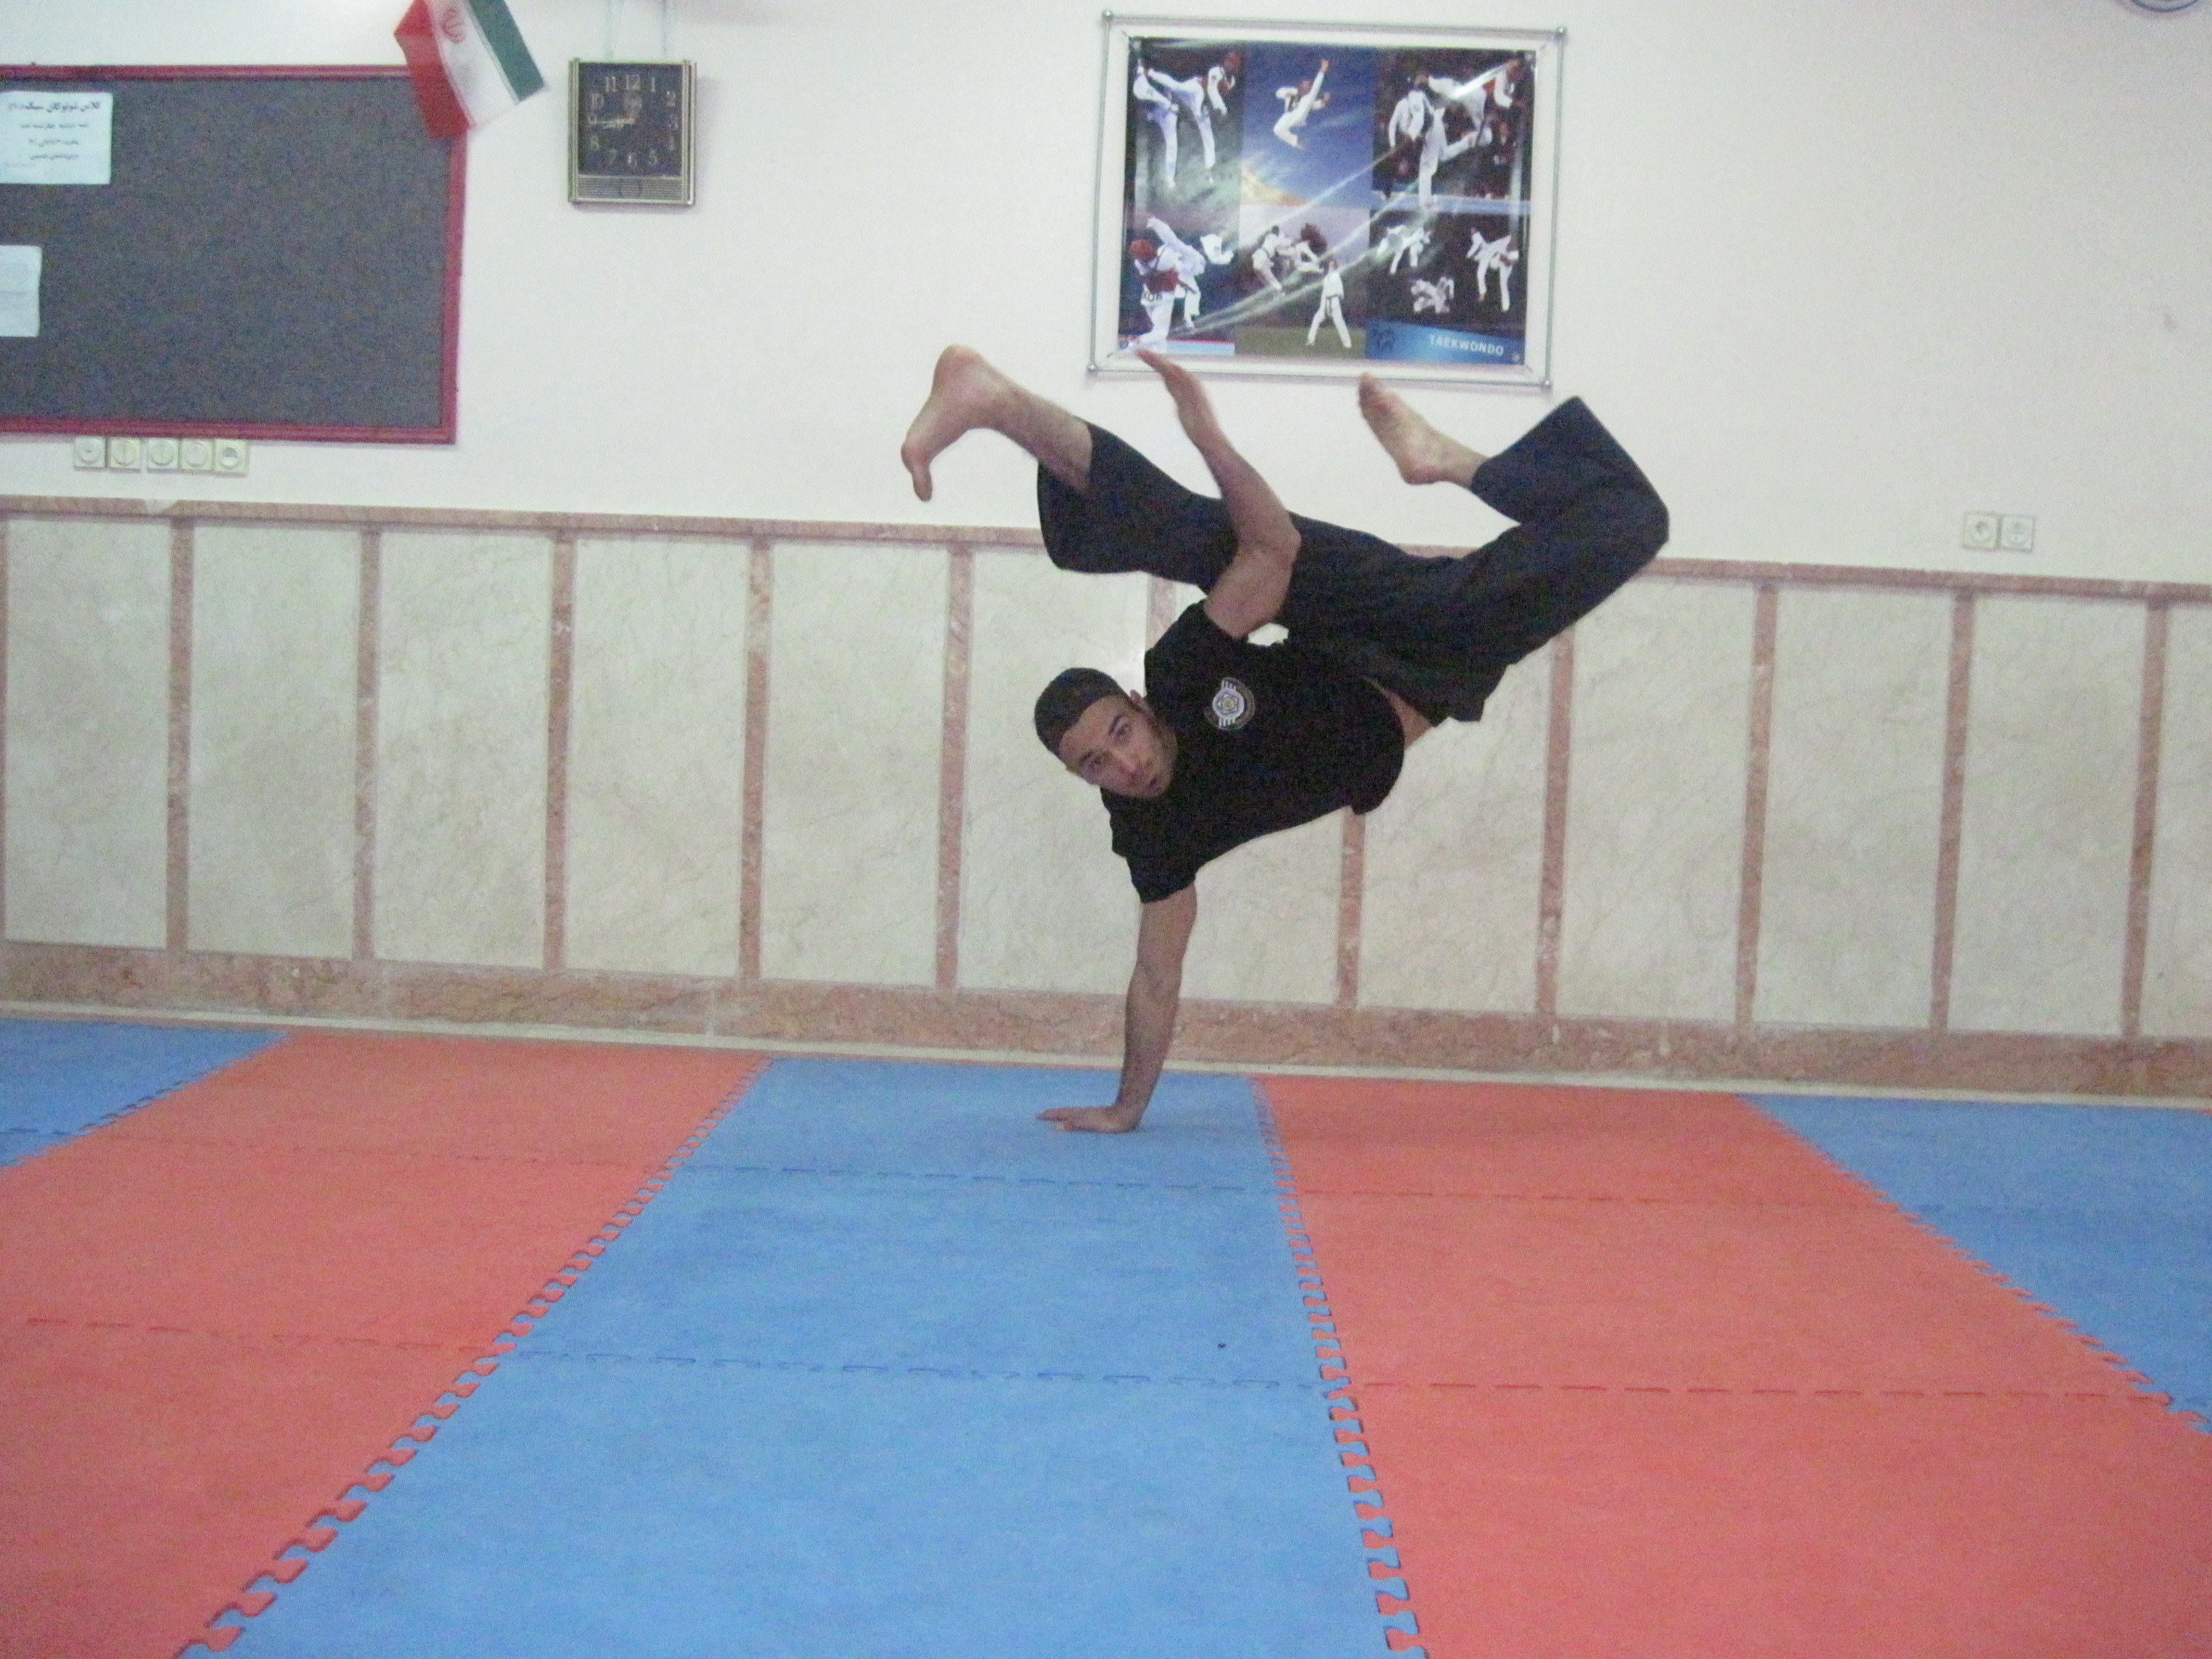 http://rozup.ir/up/hapkidoksb/Documents/IMG_1471.JPG